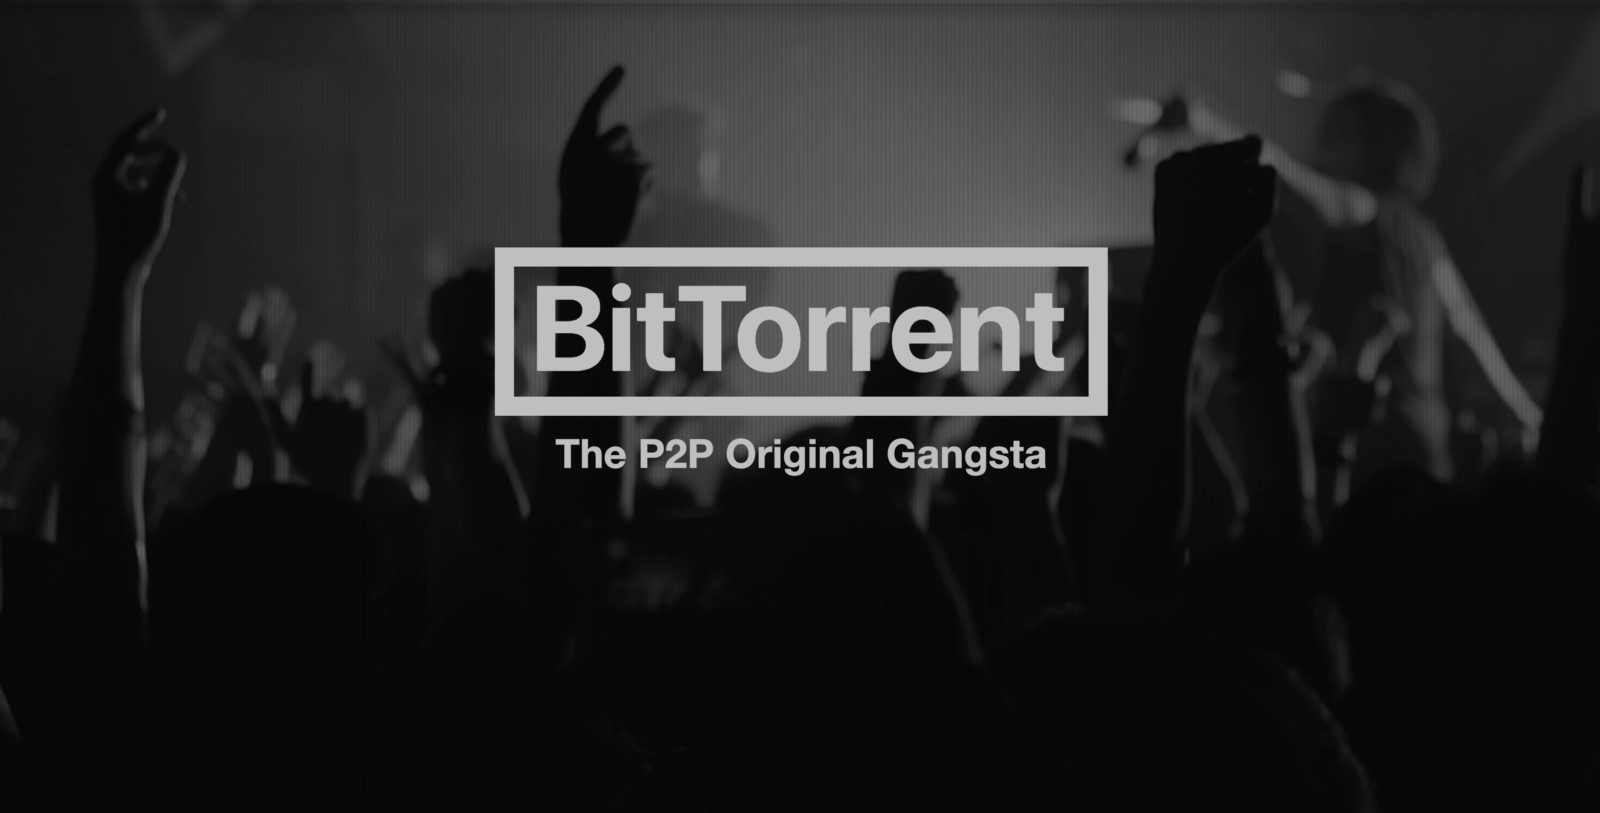 16 New Employees and 5 Exit at BitTorrent Since Acquisition by Tron (TRX) 13